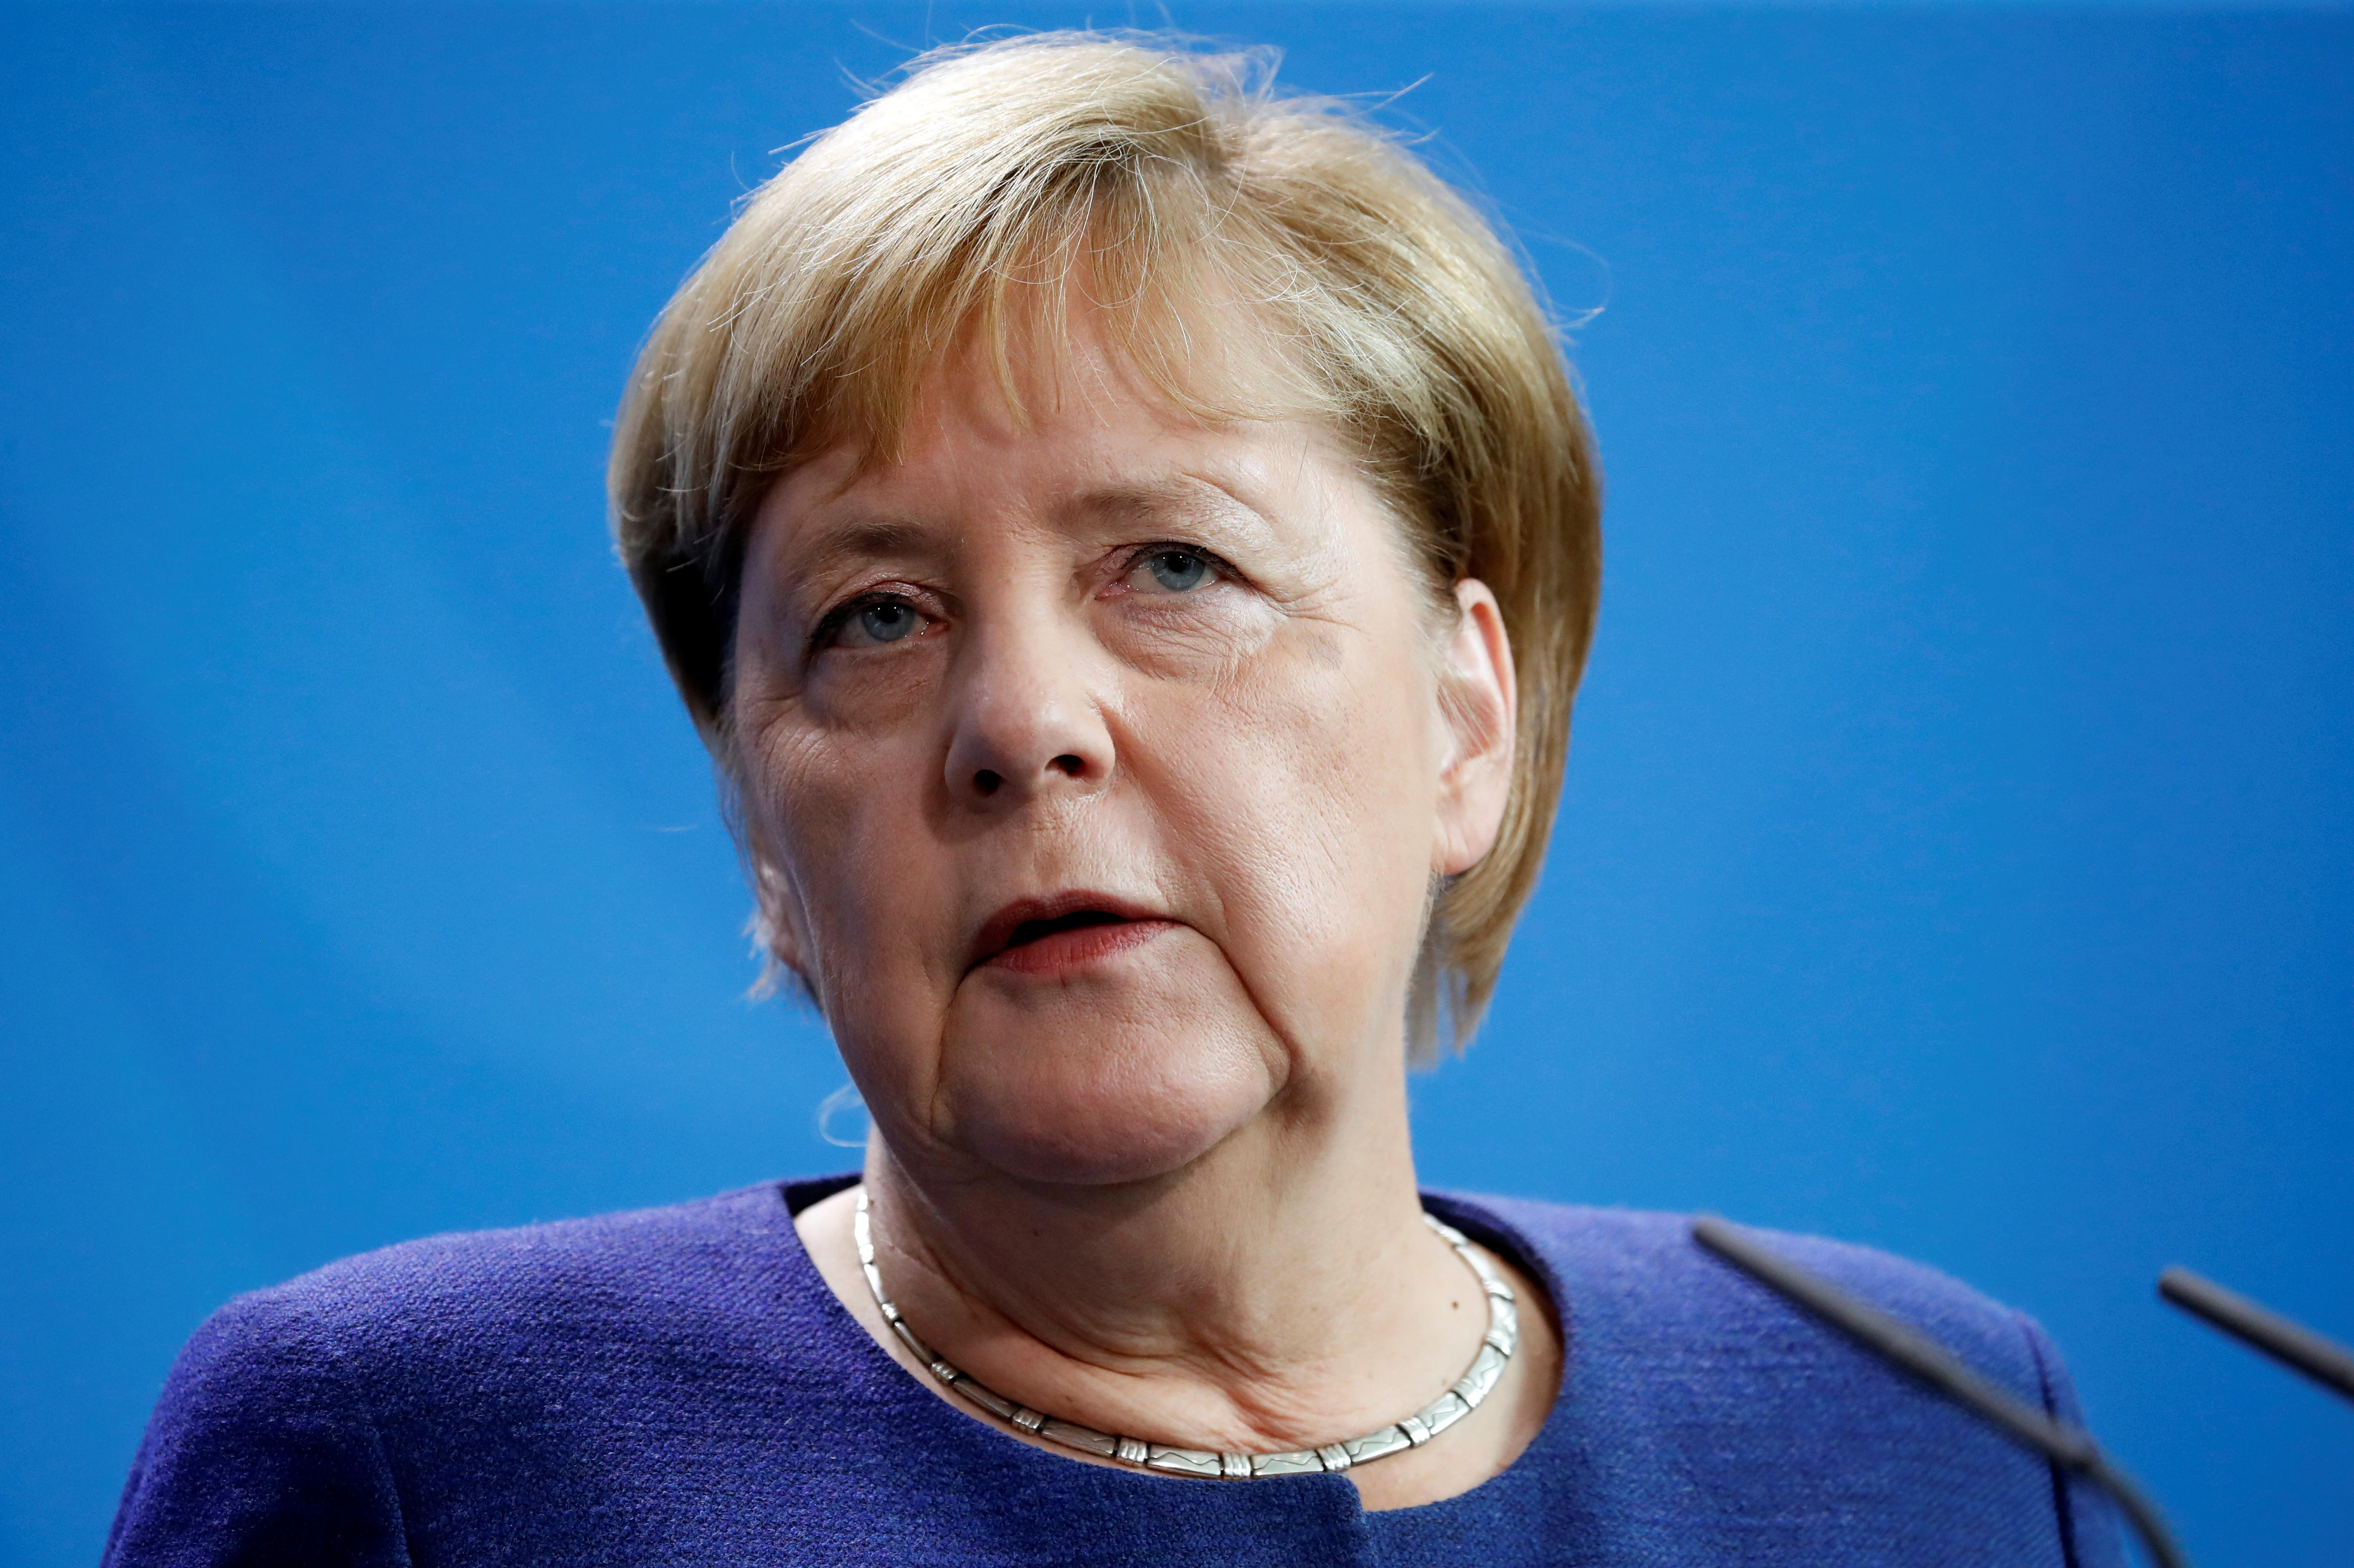 Merkel suggests she wants to uphold halt in arms exports to Saudi